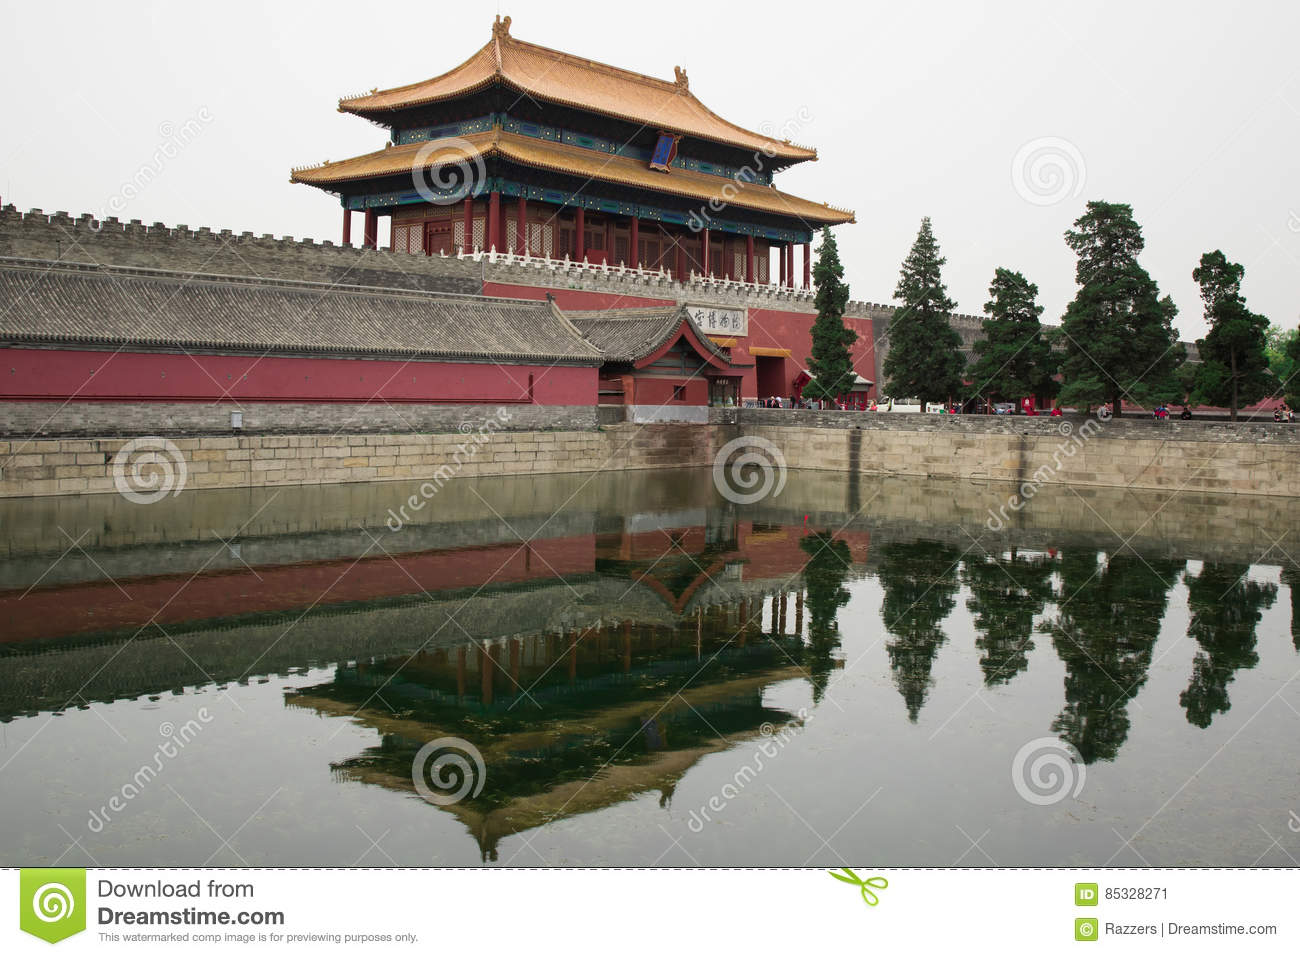 Old Buddhism Temple Red Asian Pagoda Tower Ancient Architecture